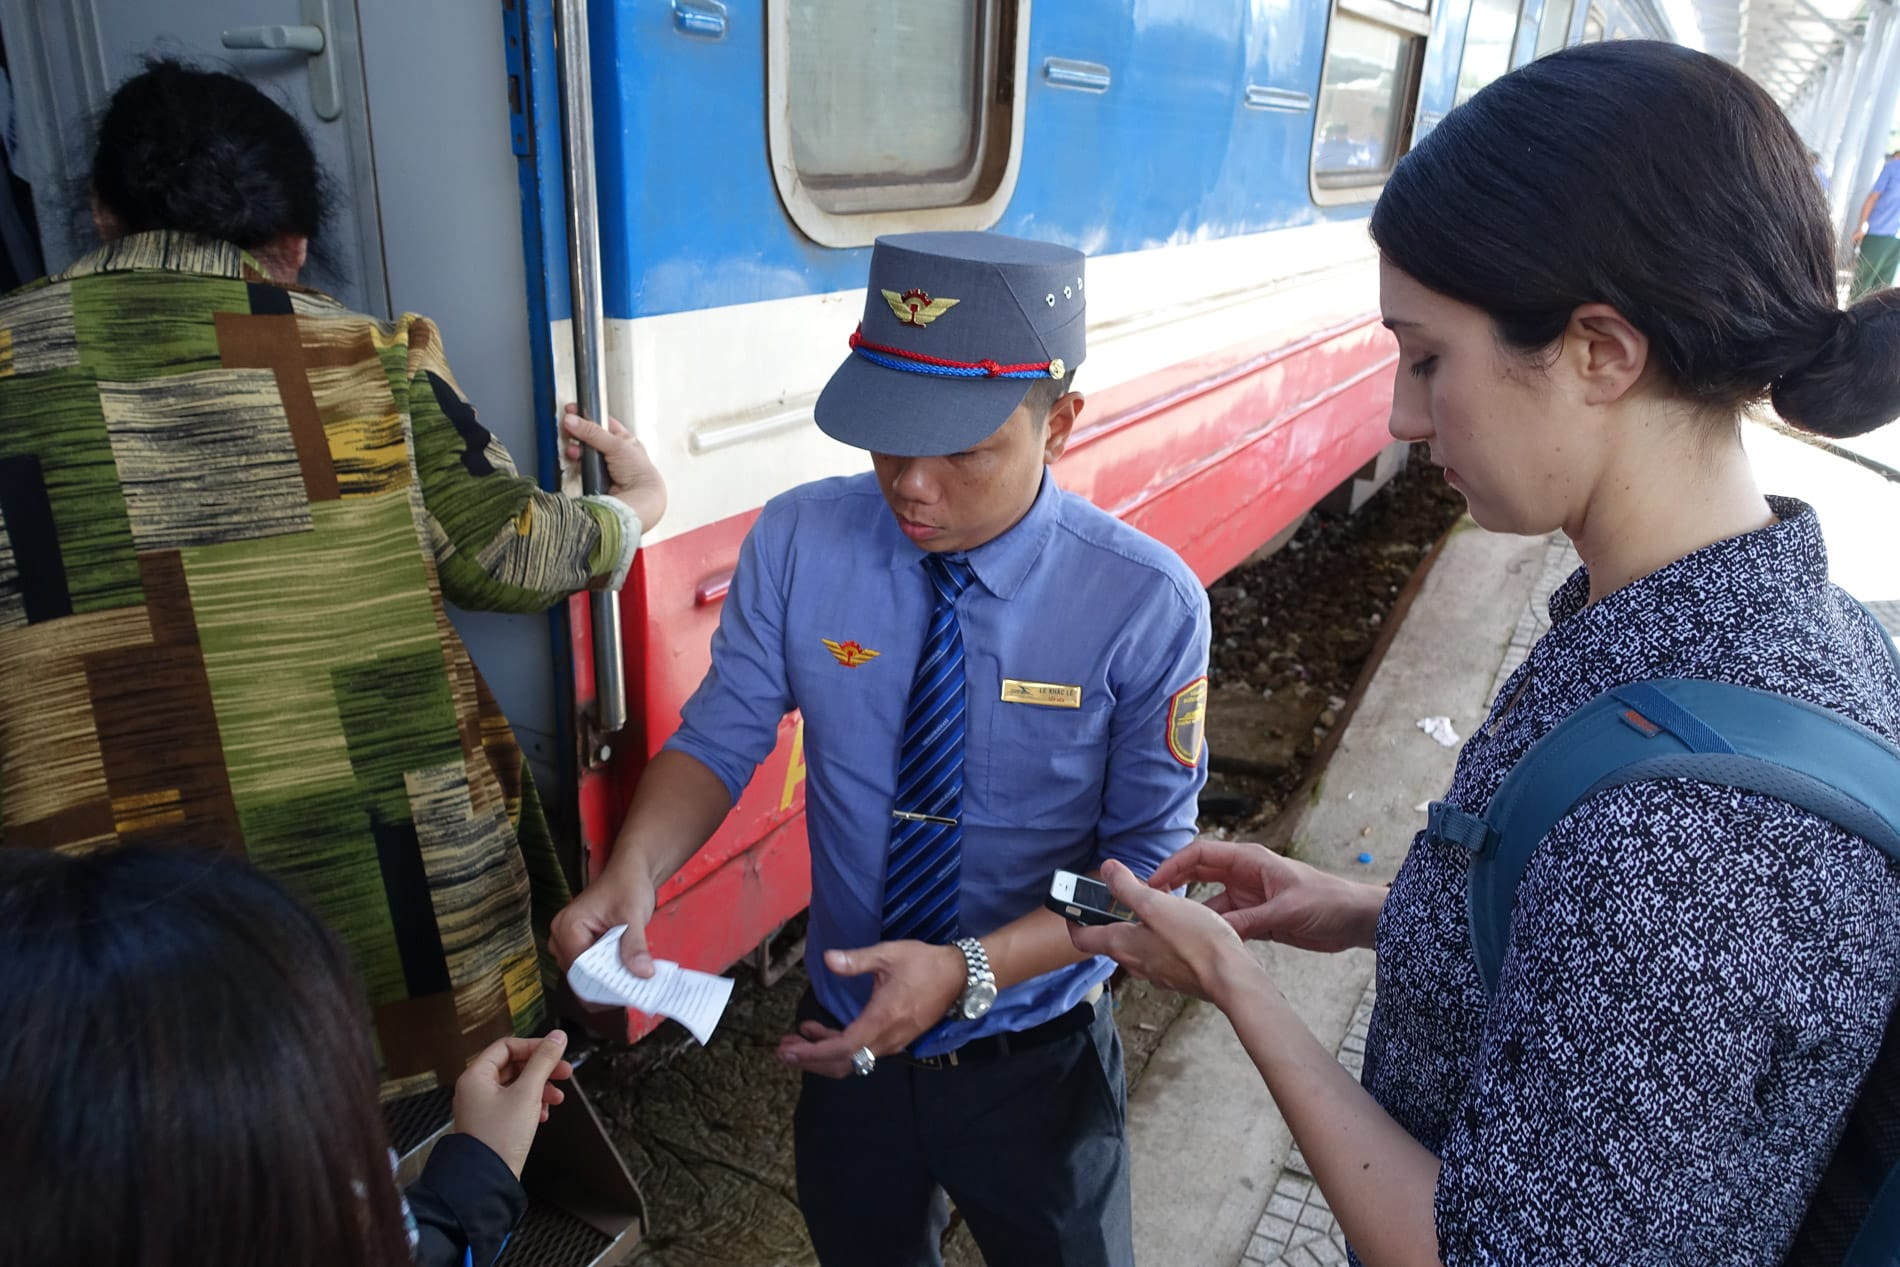 ticket inspector check tickets before boarding